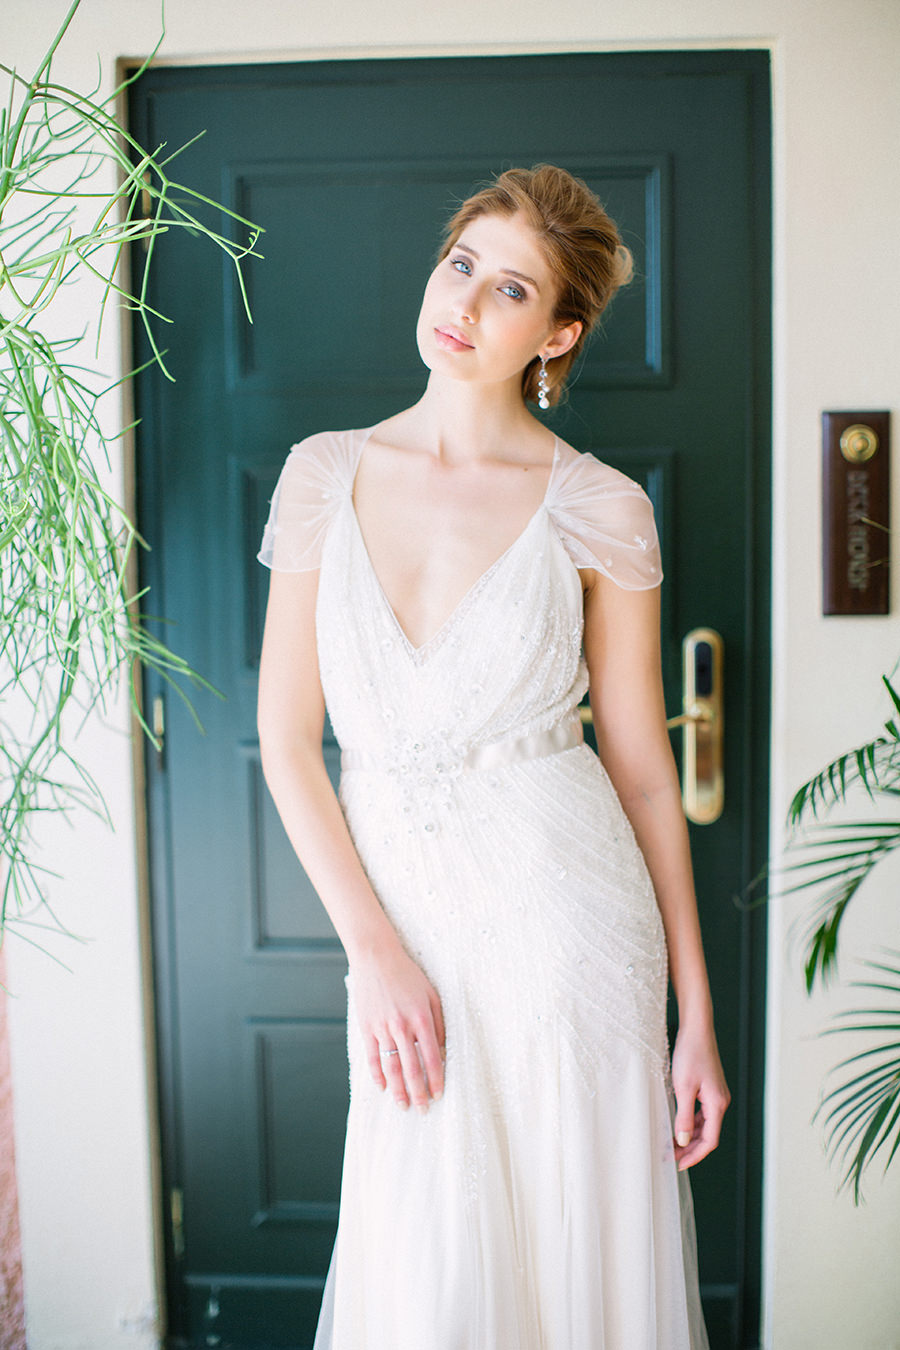 Radiant Beauty: A Delicate Bridal Boudoir Session From Greece!